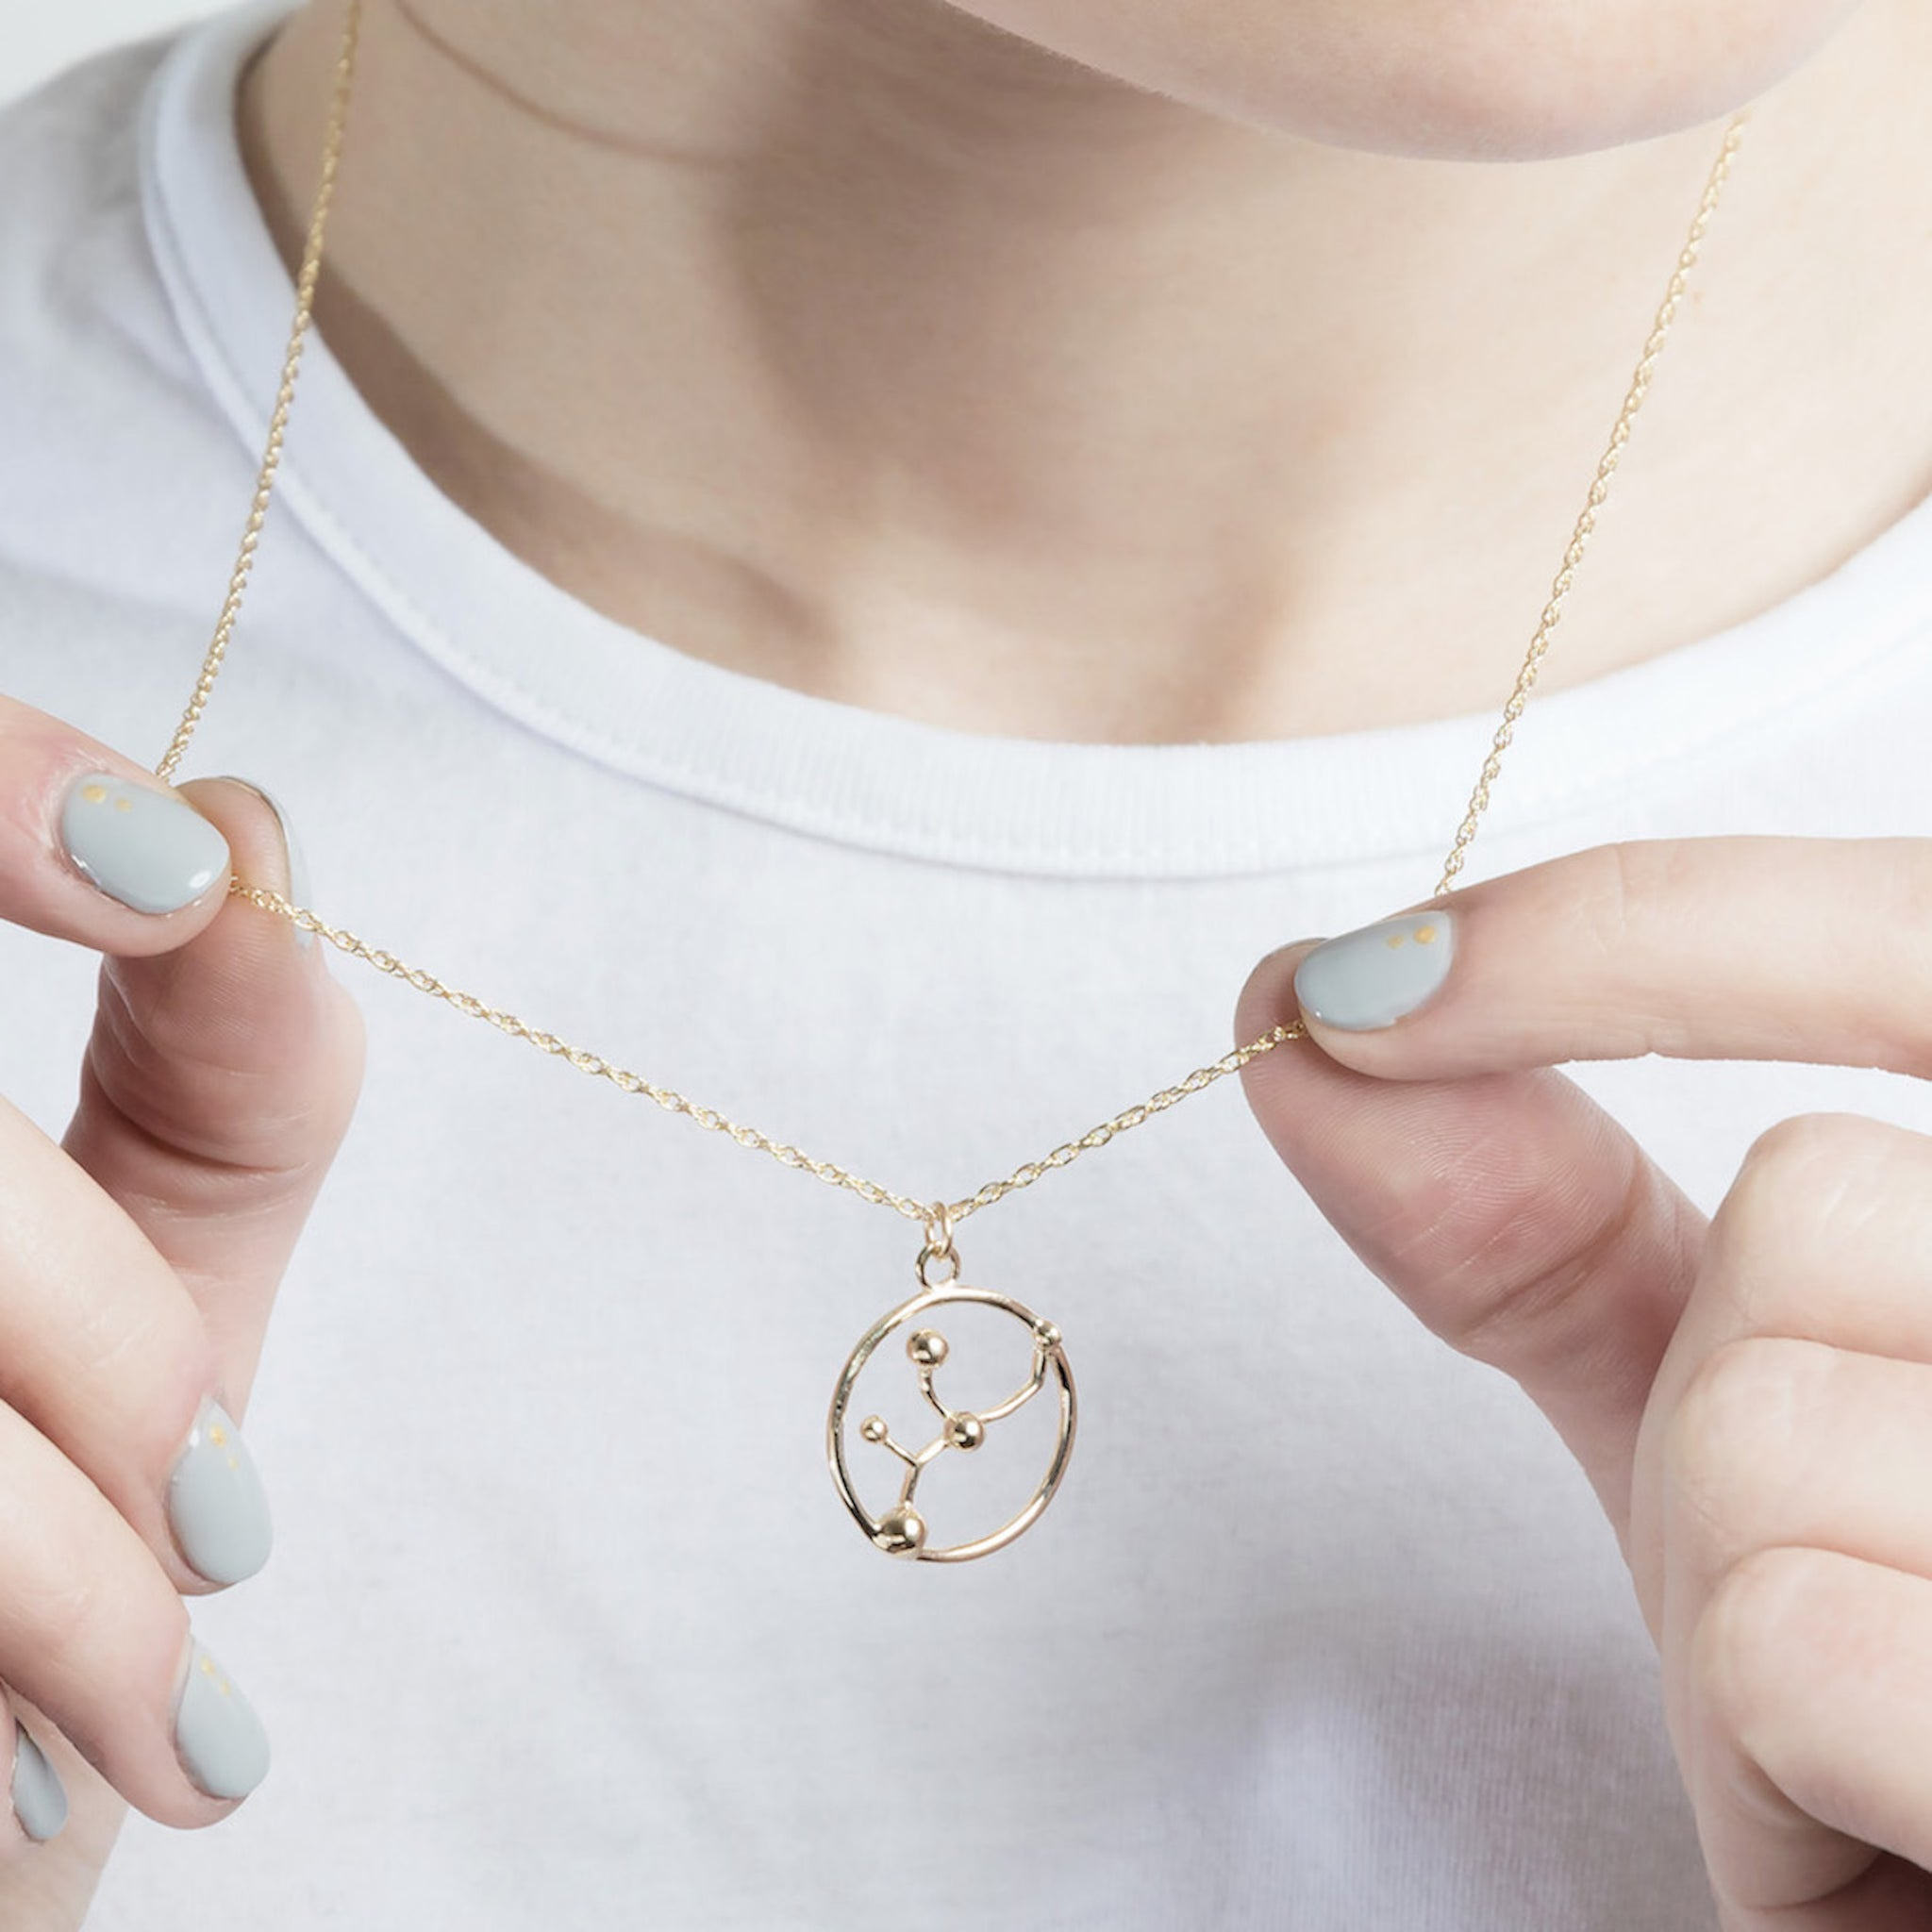 Gold Cancer Astrology Necklace